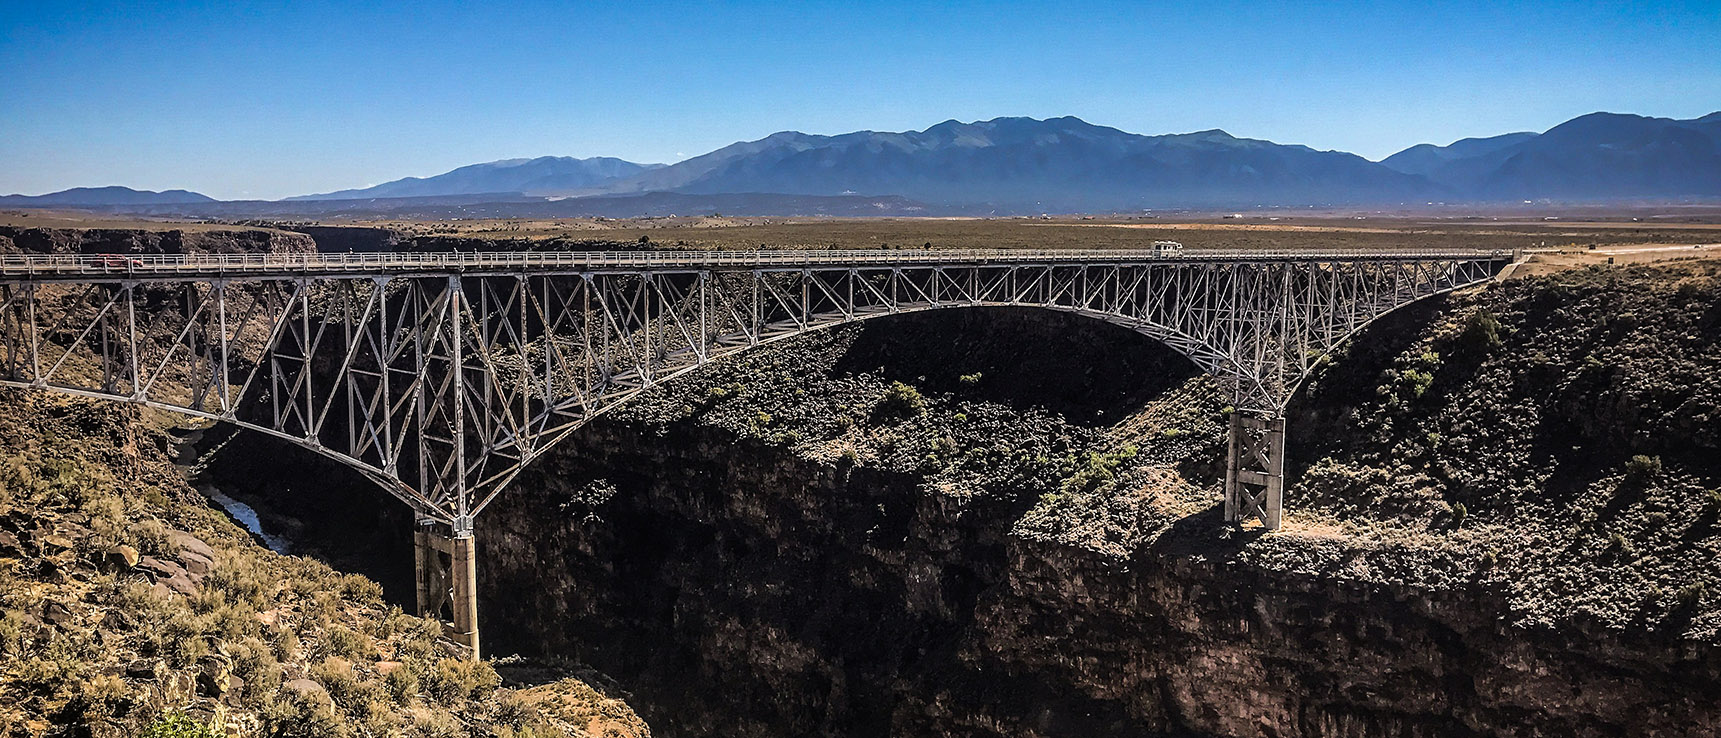 Rio grande gorge bridge new mexico taos